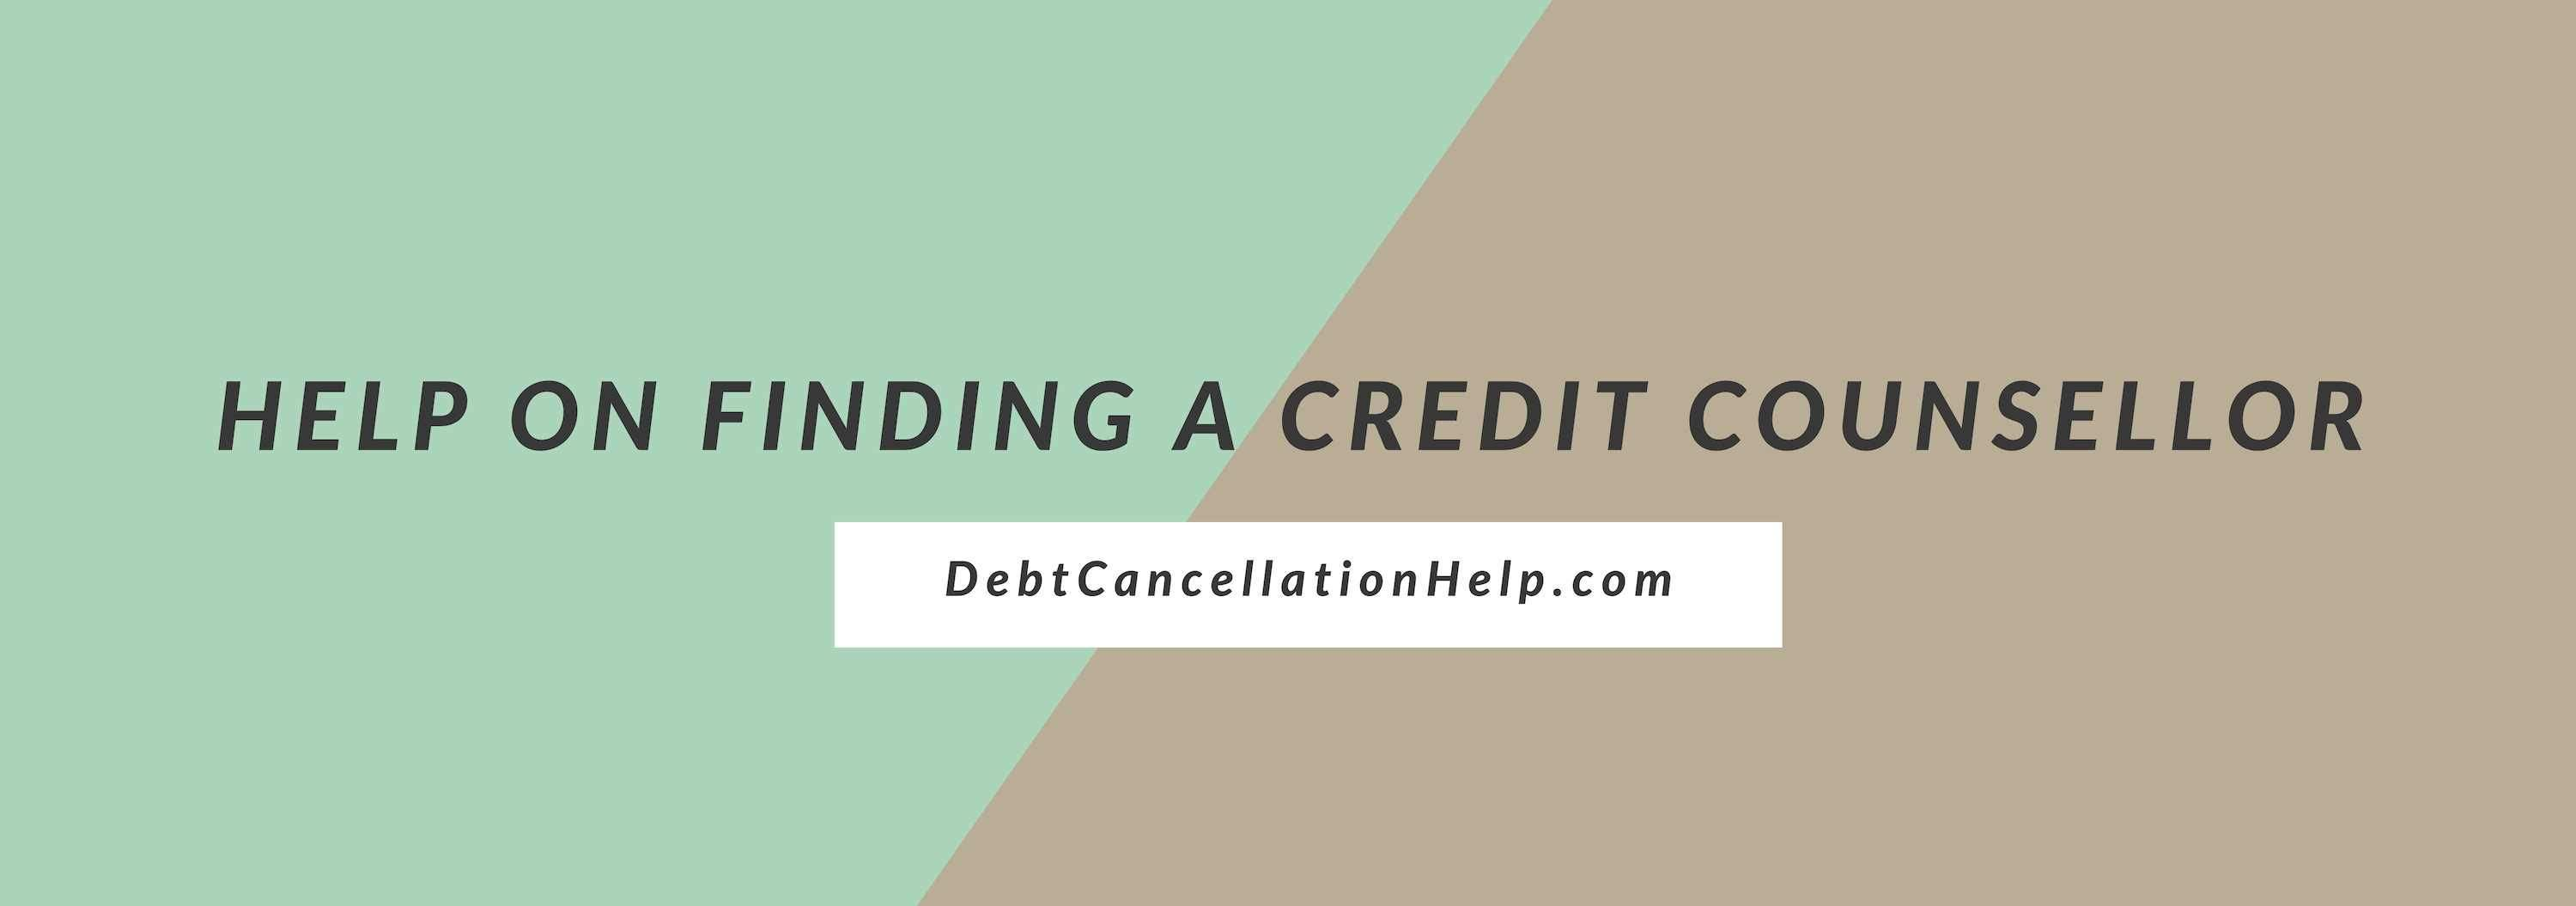 Credit counseling near me